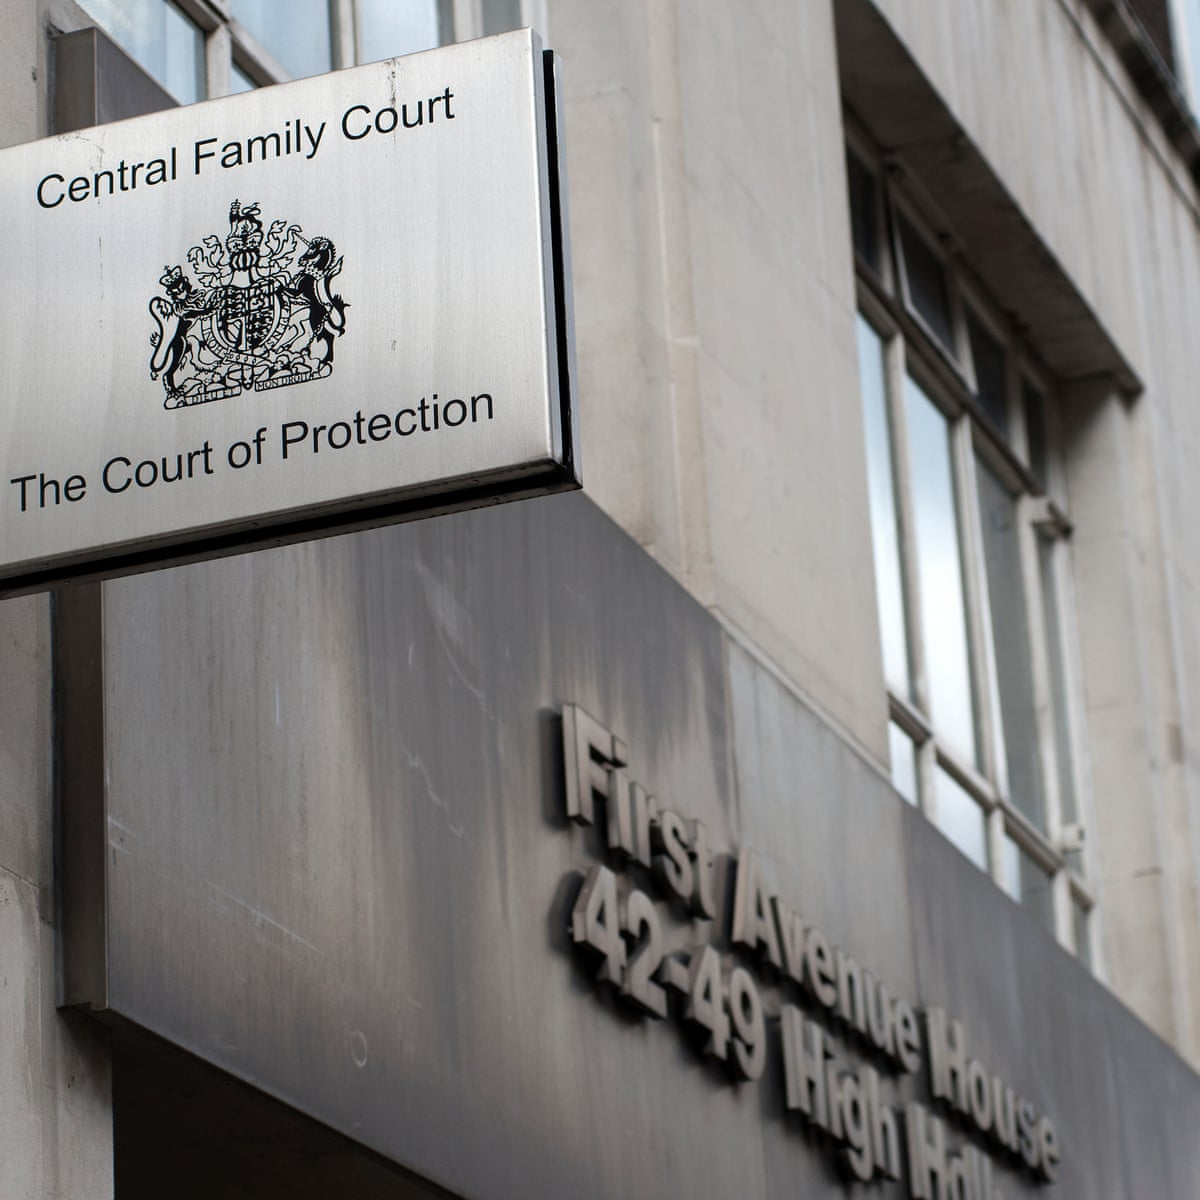 Bias In Family Courts